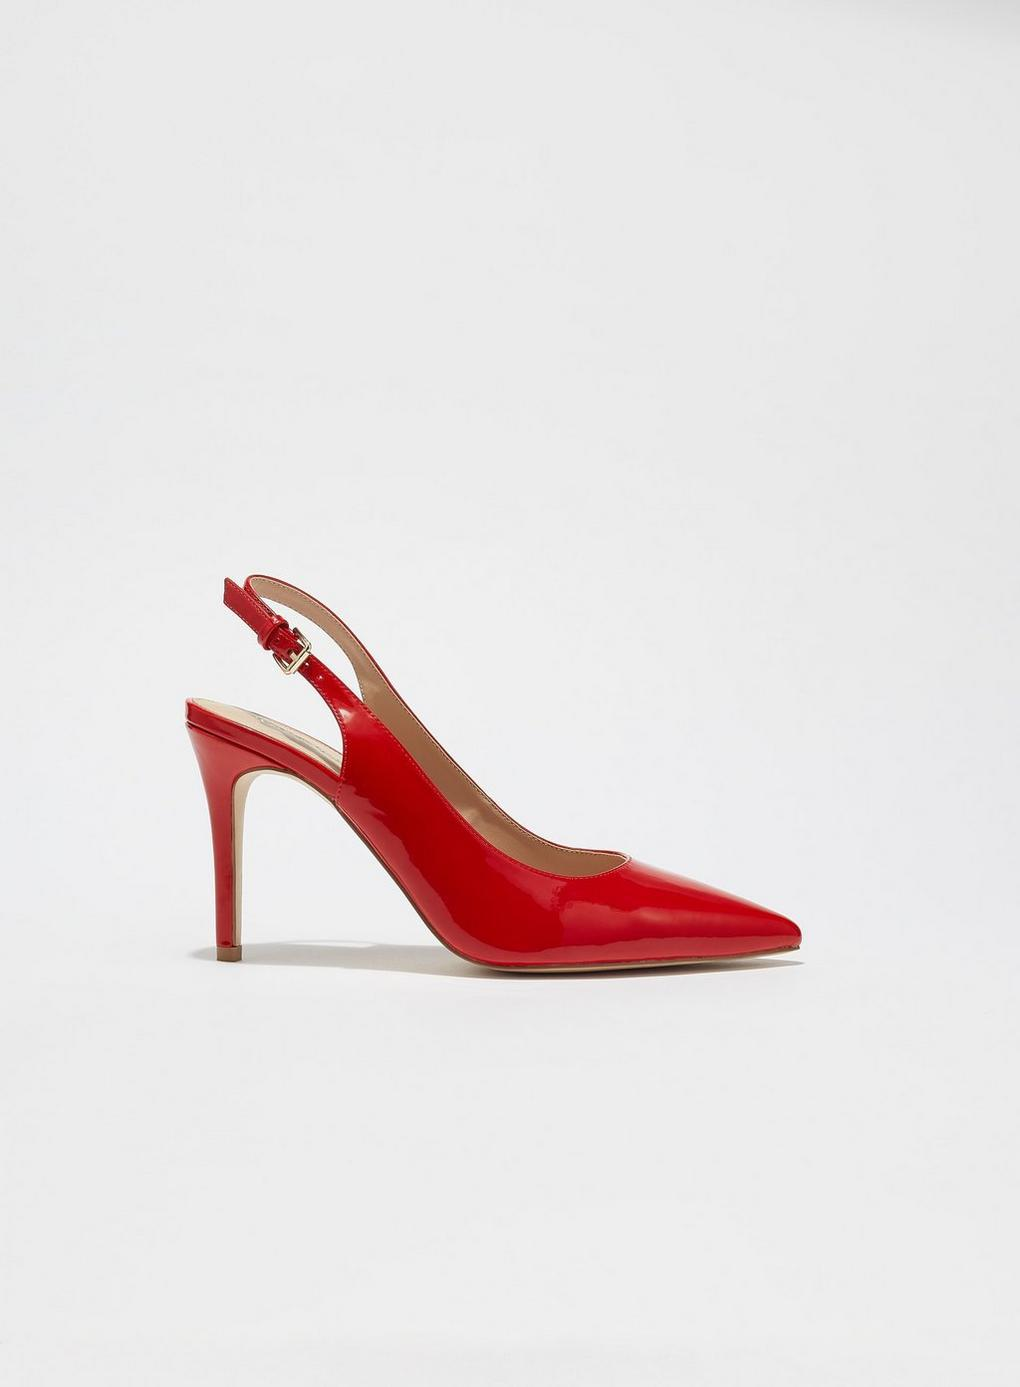 Selfridge Lyst Red Slingback Court Shoes Cathy In Miss 5jLA34R